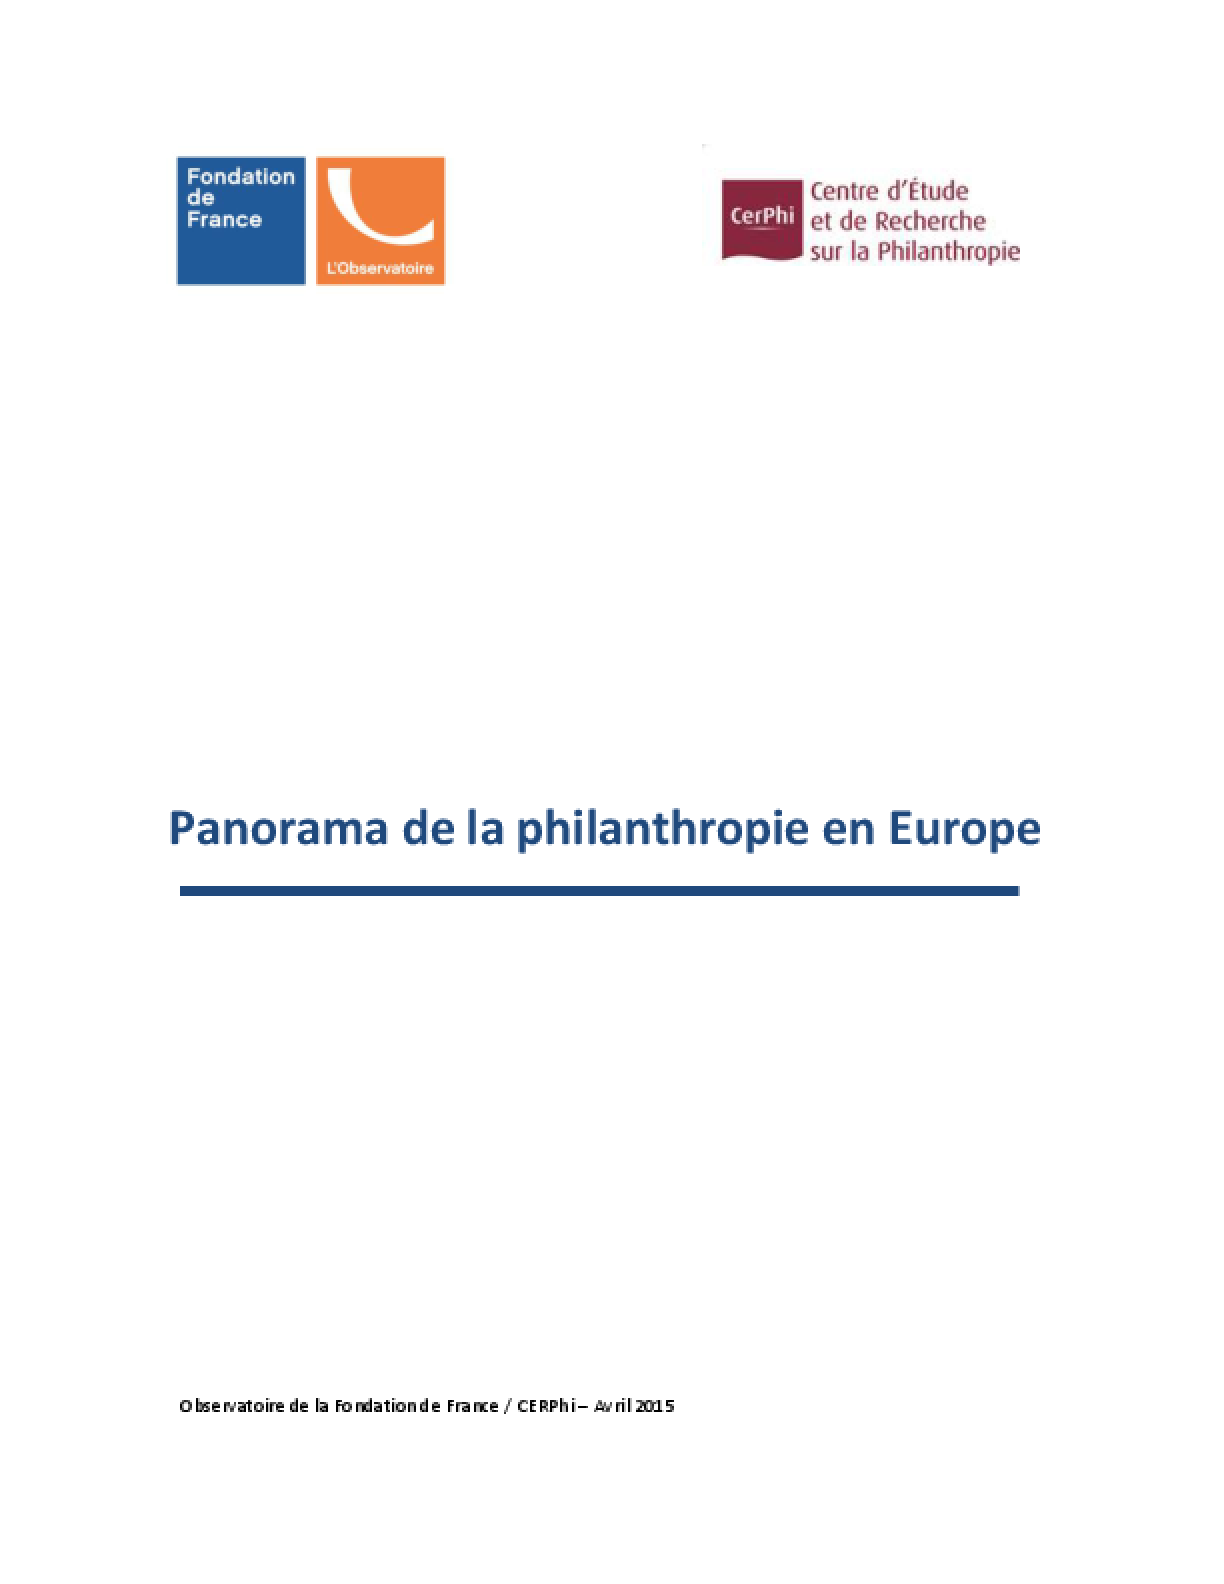 Panorama de la Philanthropie en Europe